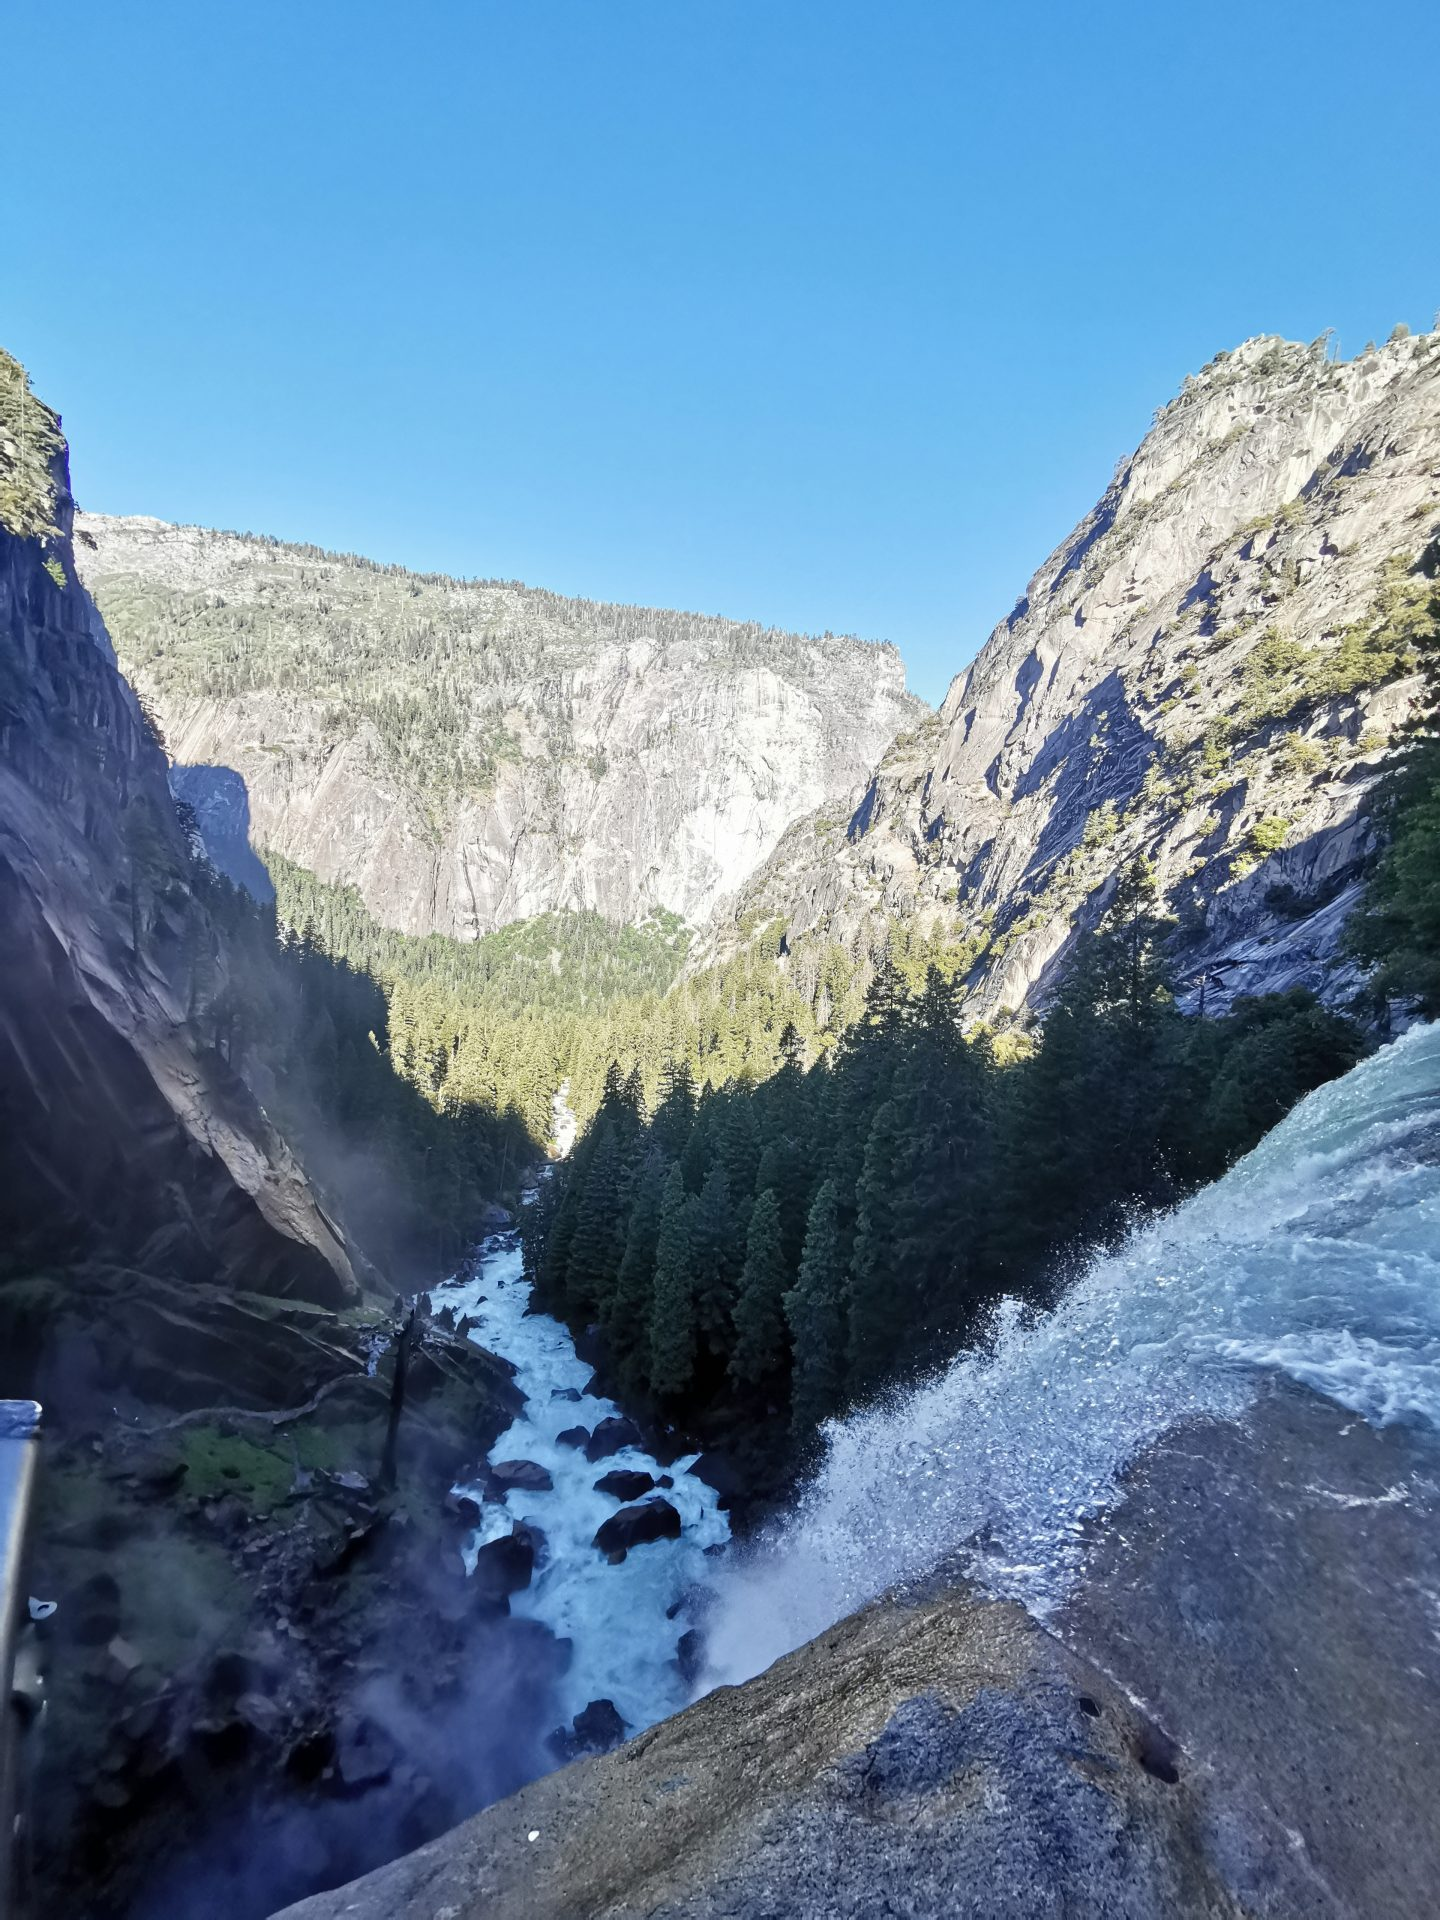 TREK AMERICA | DAY 26&27: YOSEMITE NATIONAL PARK | VERNAL FALLS